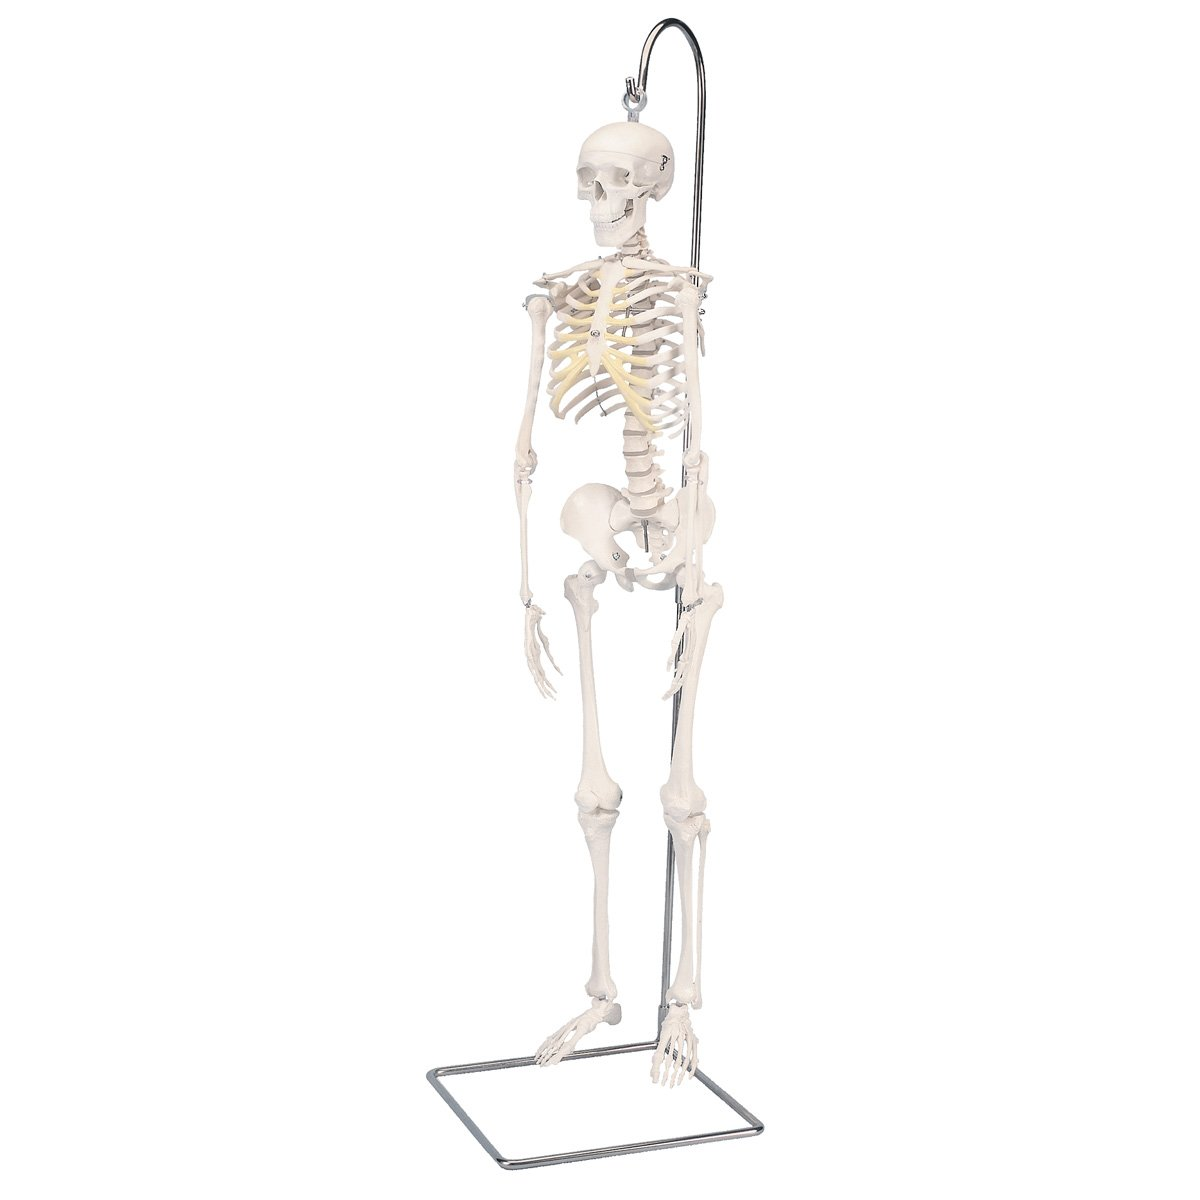 3B Scientific A18 1 Plastic Mini Human Skeleton Shorty Anatomically Detailed on Hanging Stand 37 Height